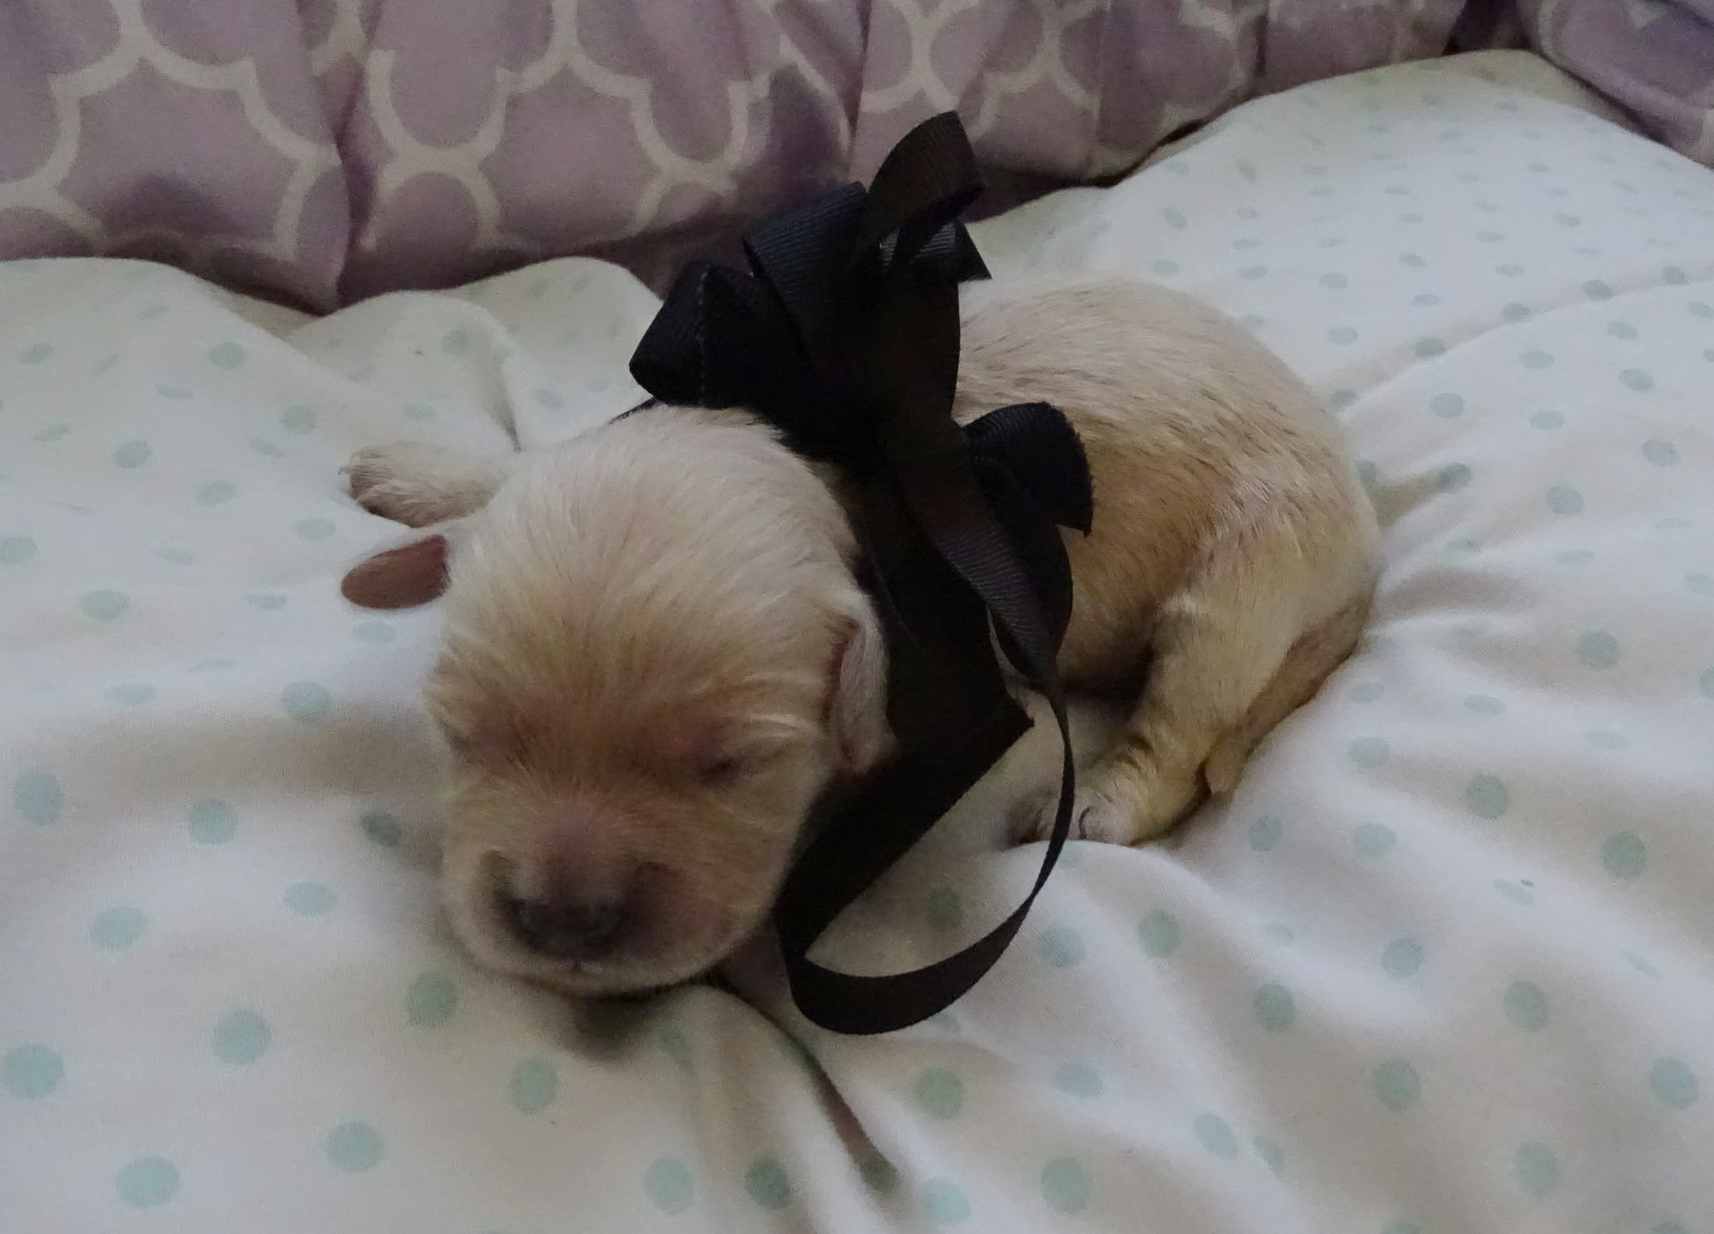 Meet Robert! - Robert is a light gold colored male puppy. He was born at around 7:20 AM and weighed 9.3 oz.